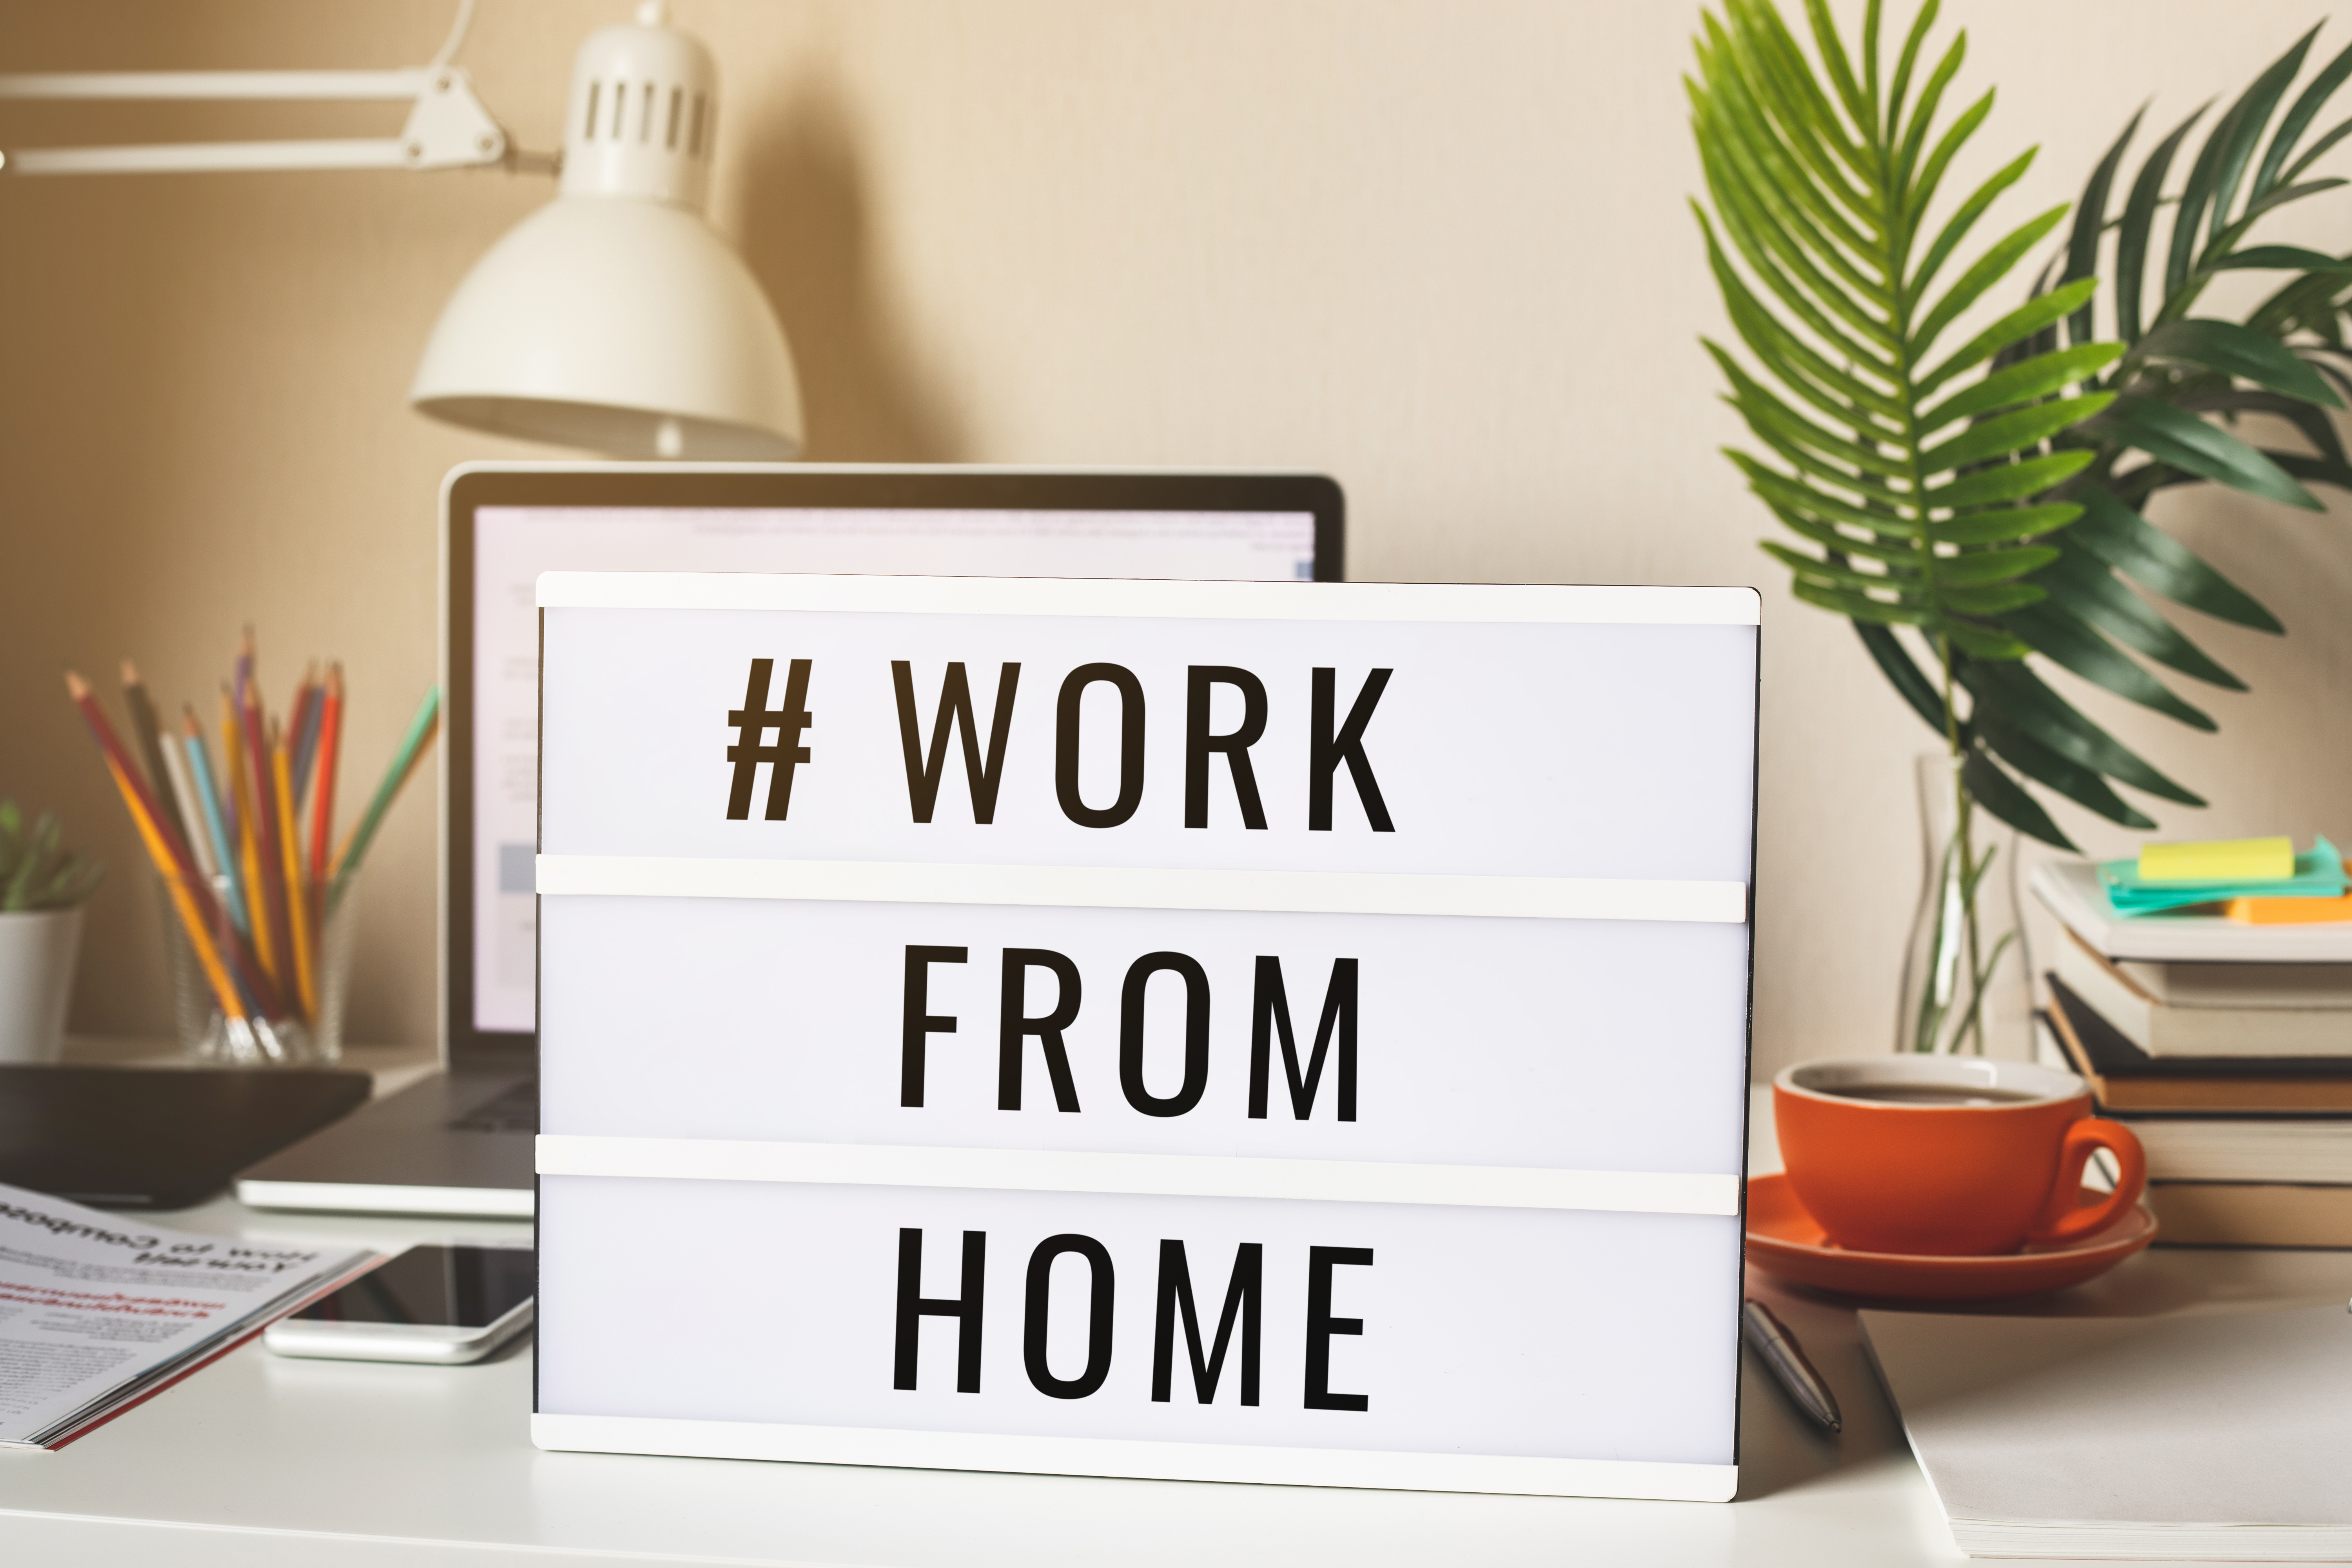 Working from home productivity: how to stay productive while on lockdown